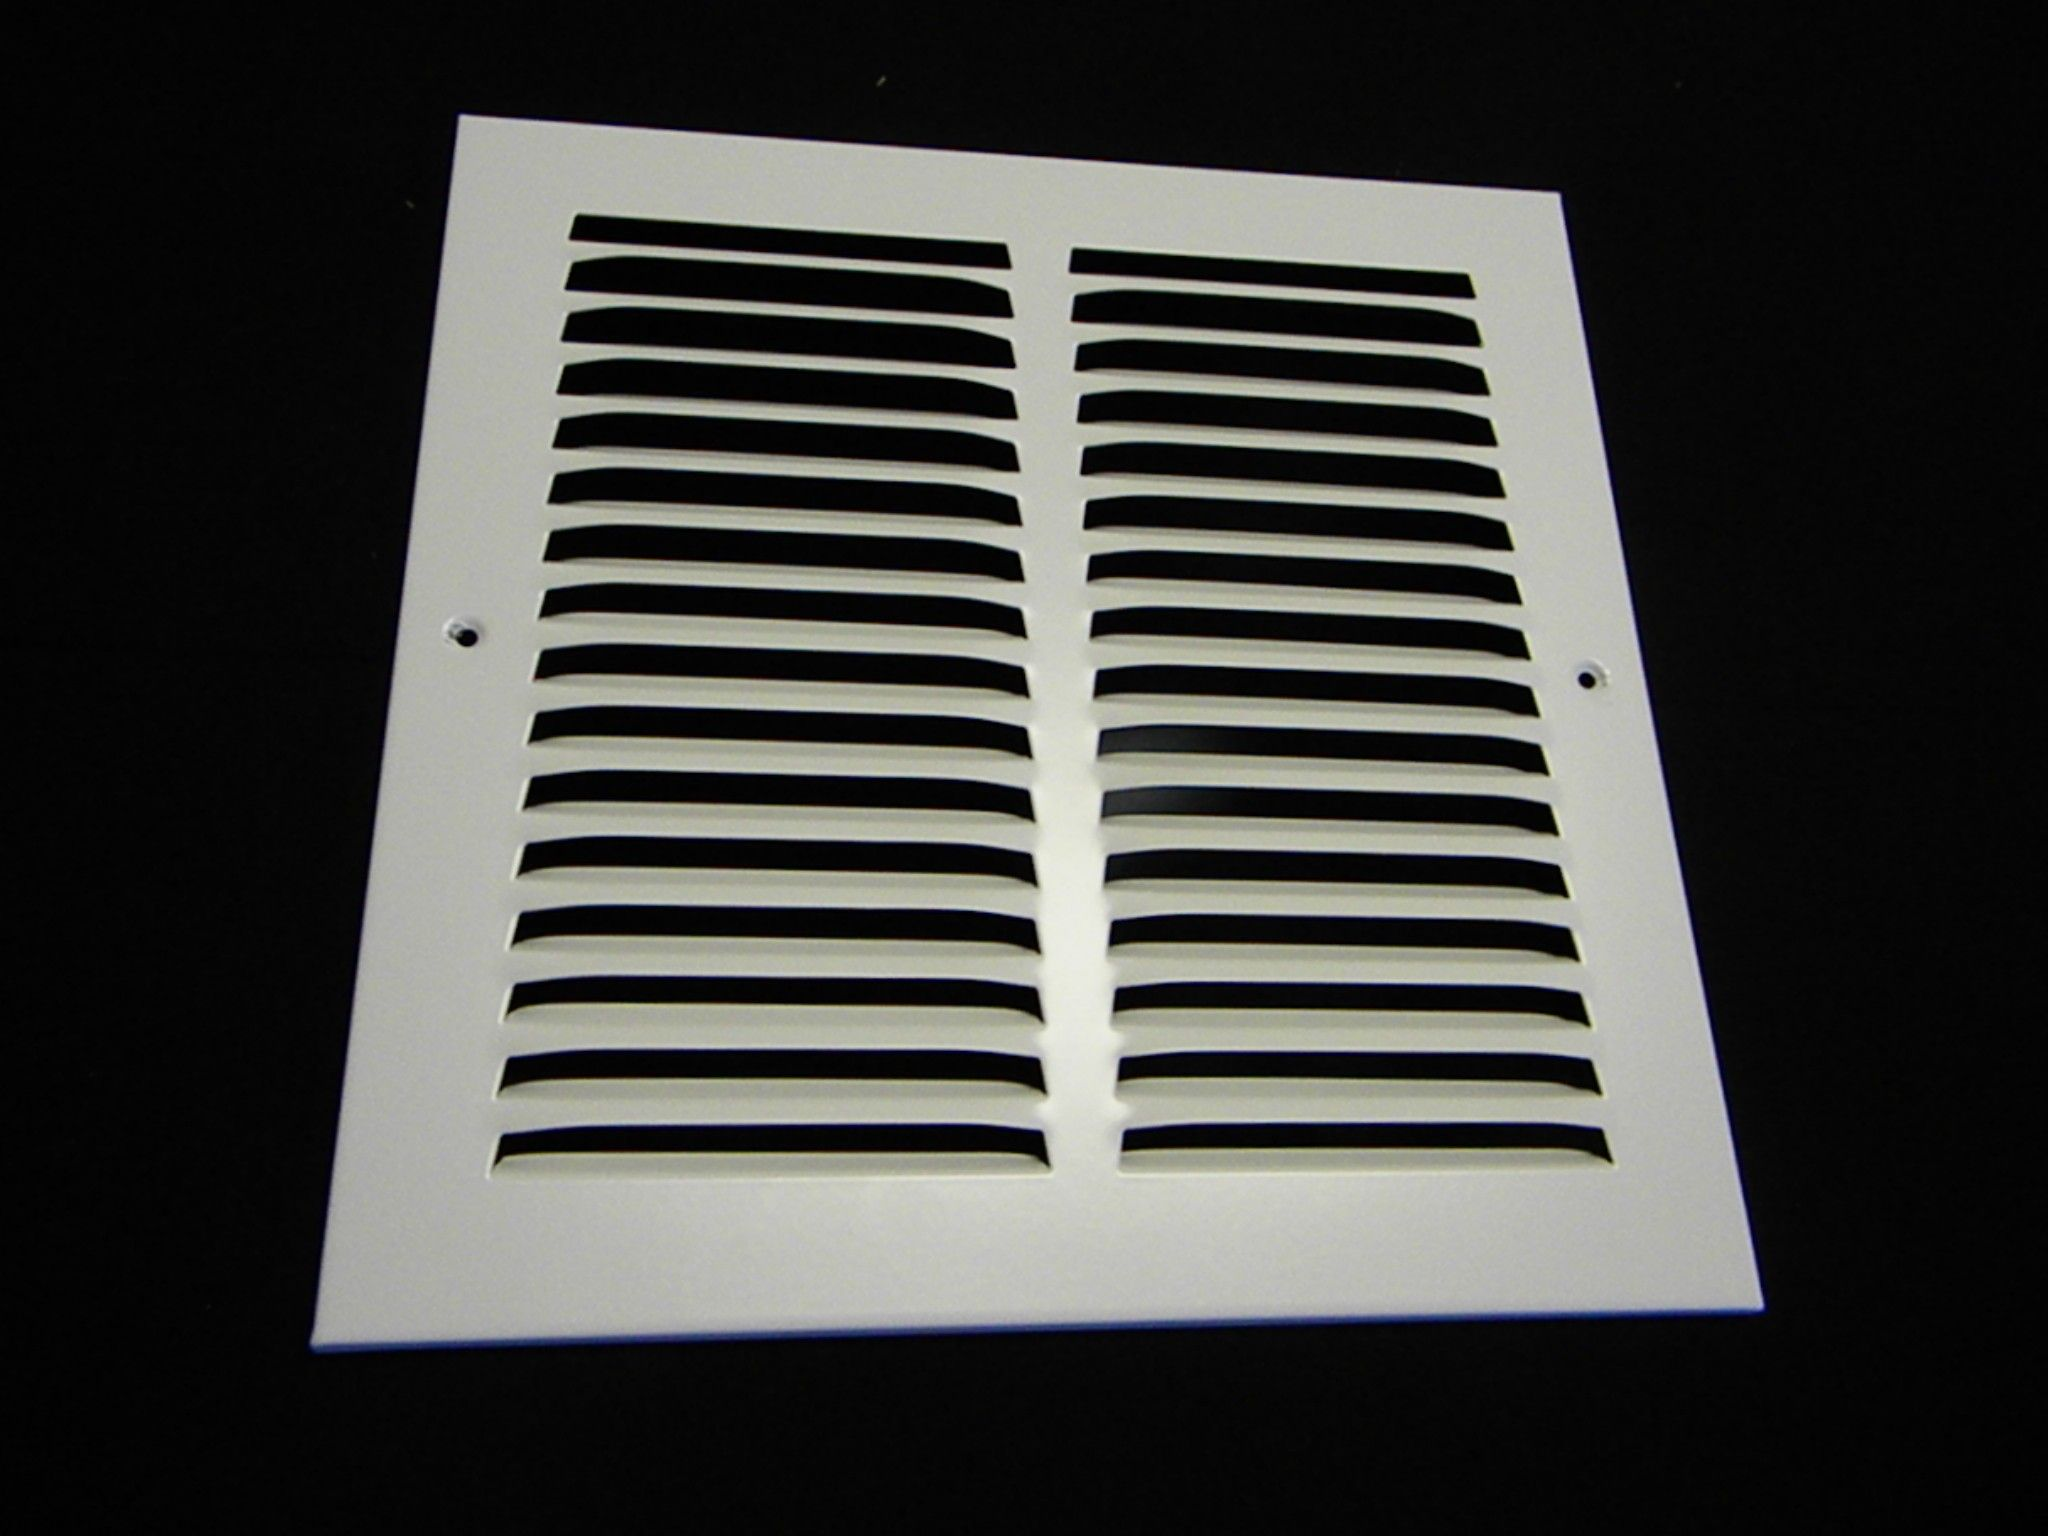 36x18 Return Stamped Grille